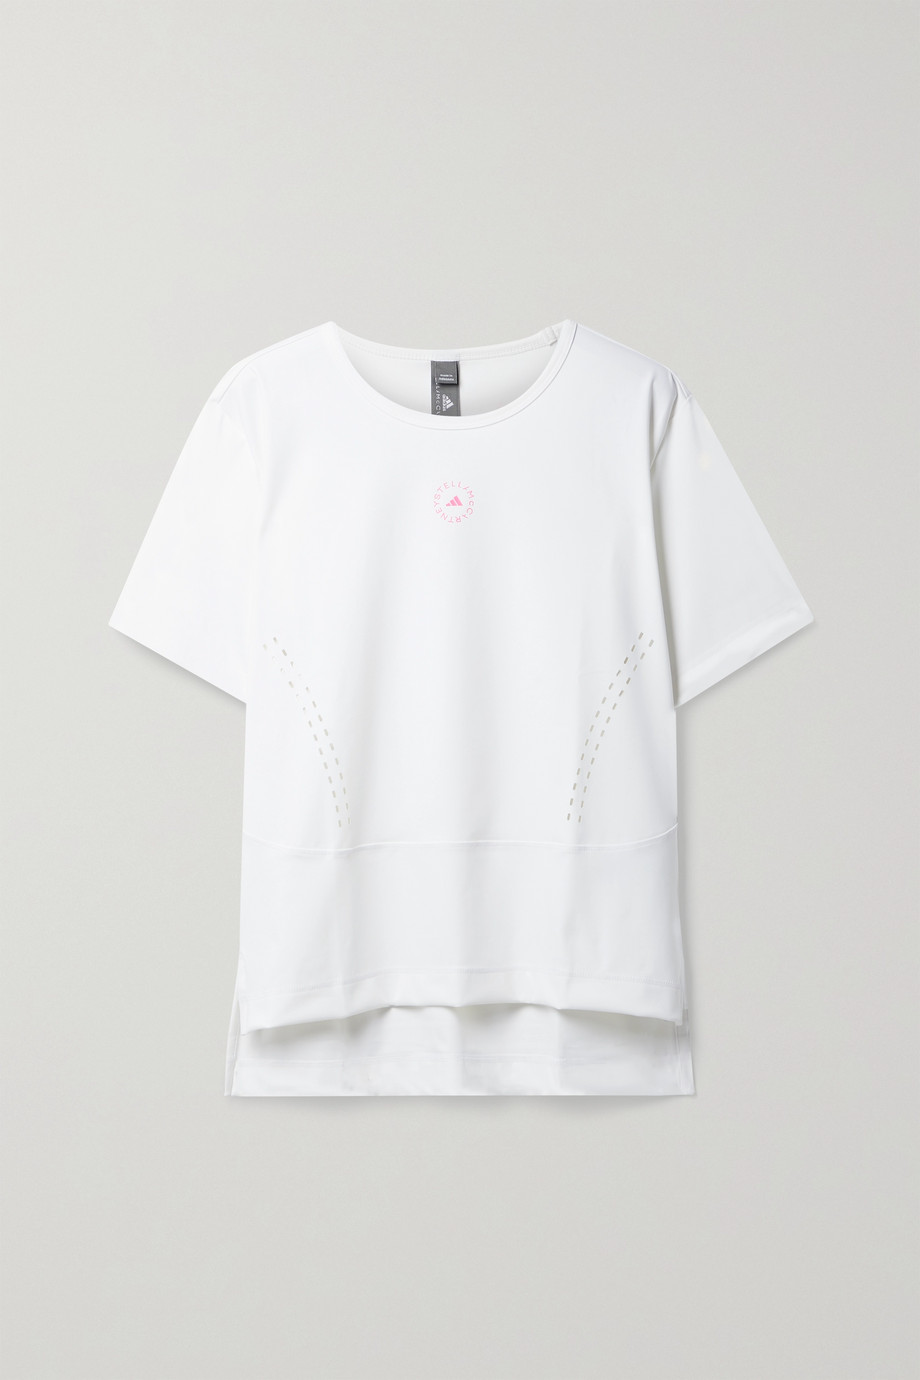 adidas by Stella McCartney TrueStrength perforated stretch recycled T-shirt